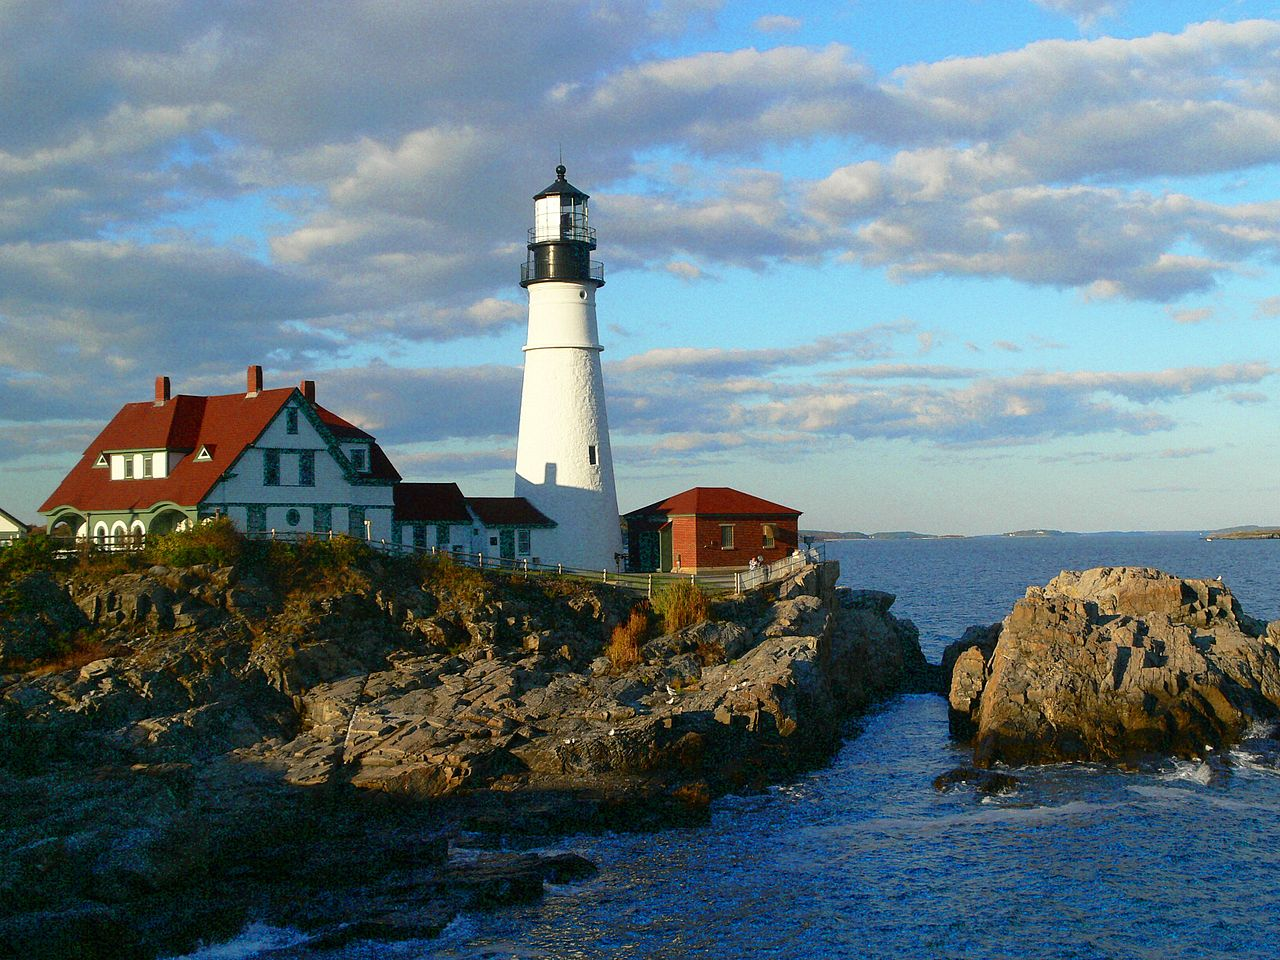 File:Portland Head Lighthouse, Maine.jpg - Wikimedia Commons